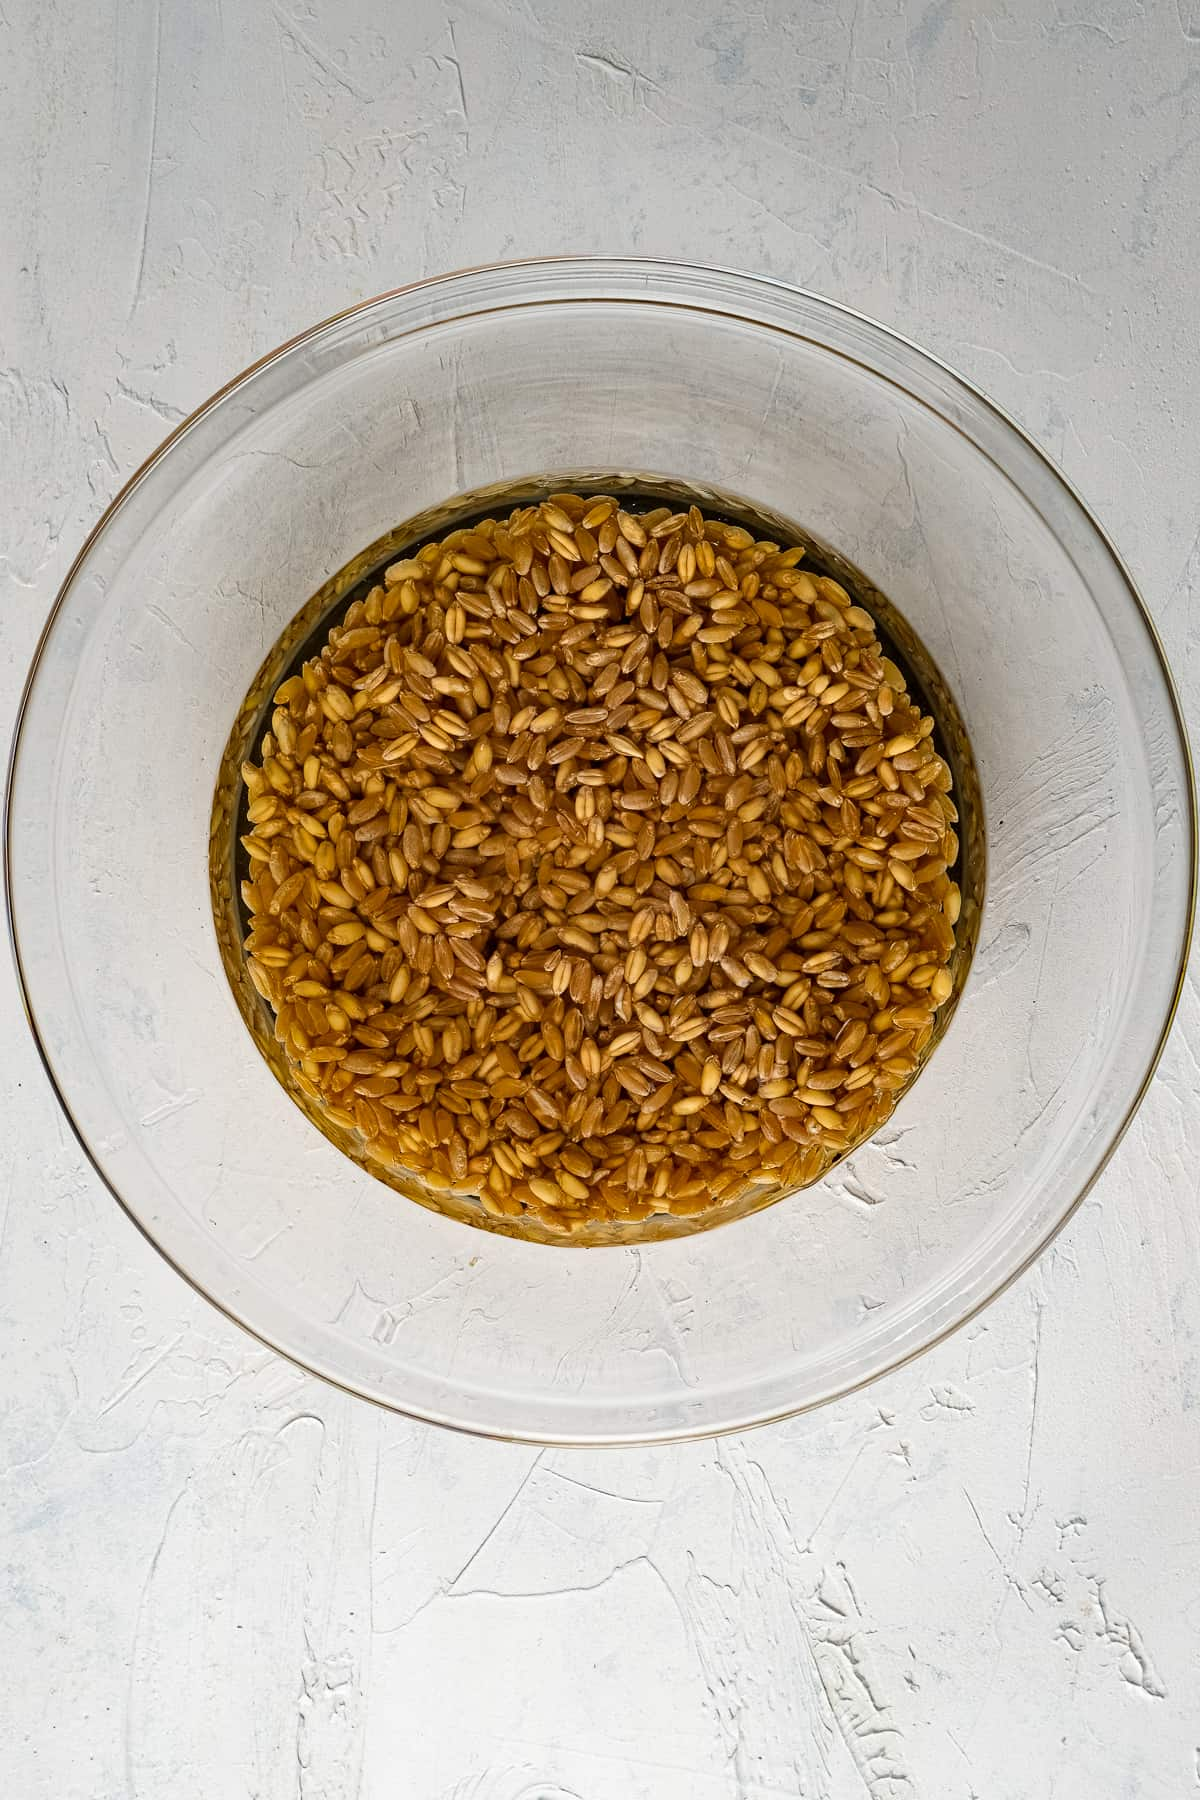 Red wheat berries in water in a glass bowl.